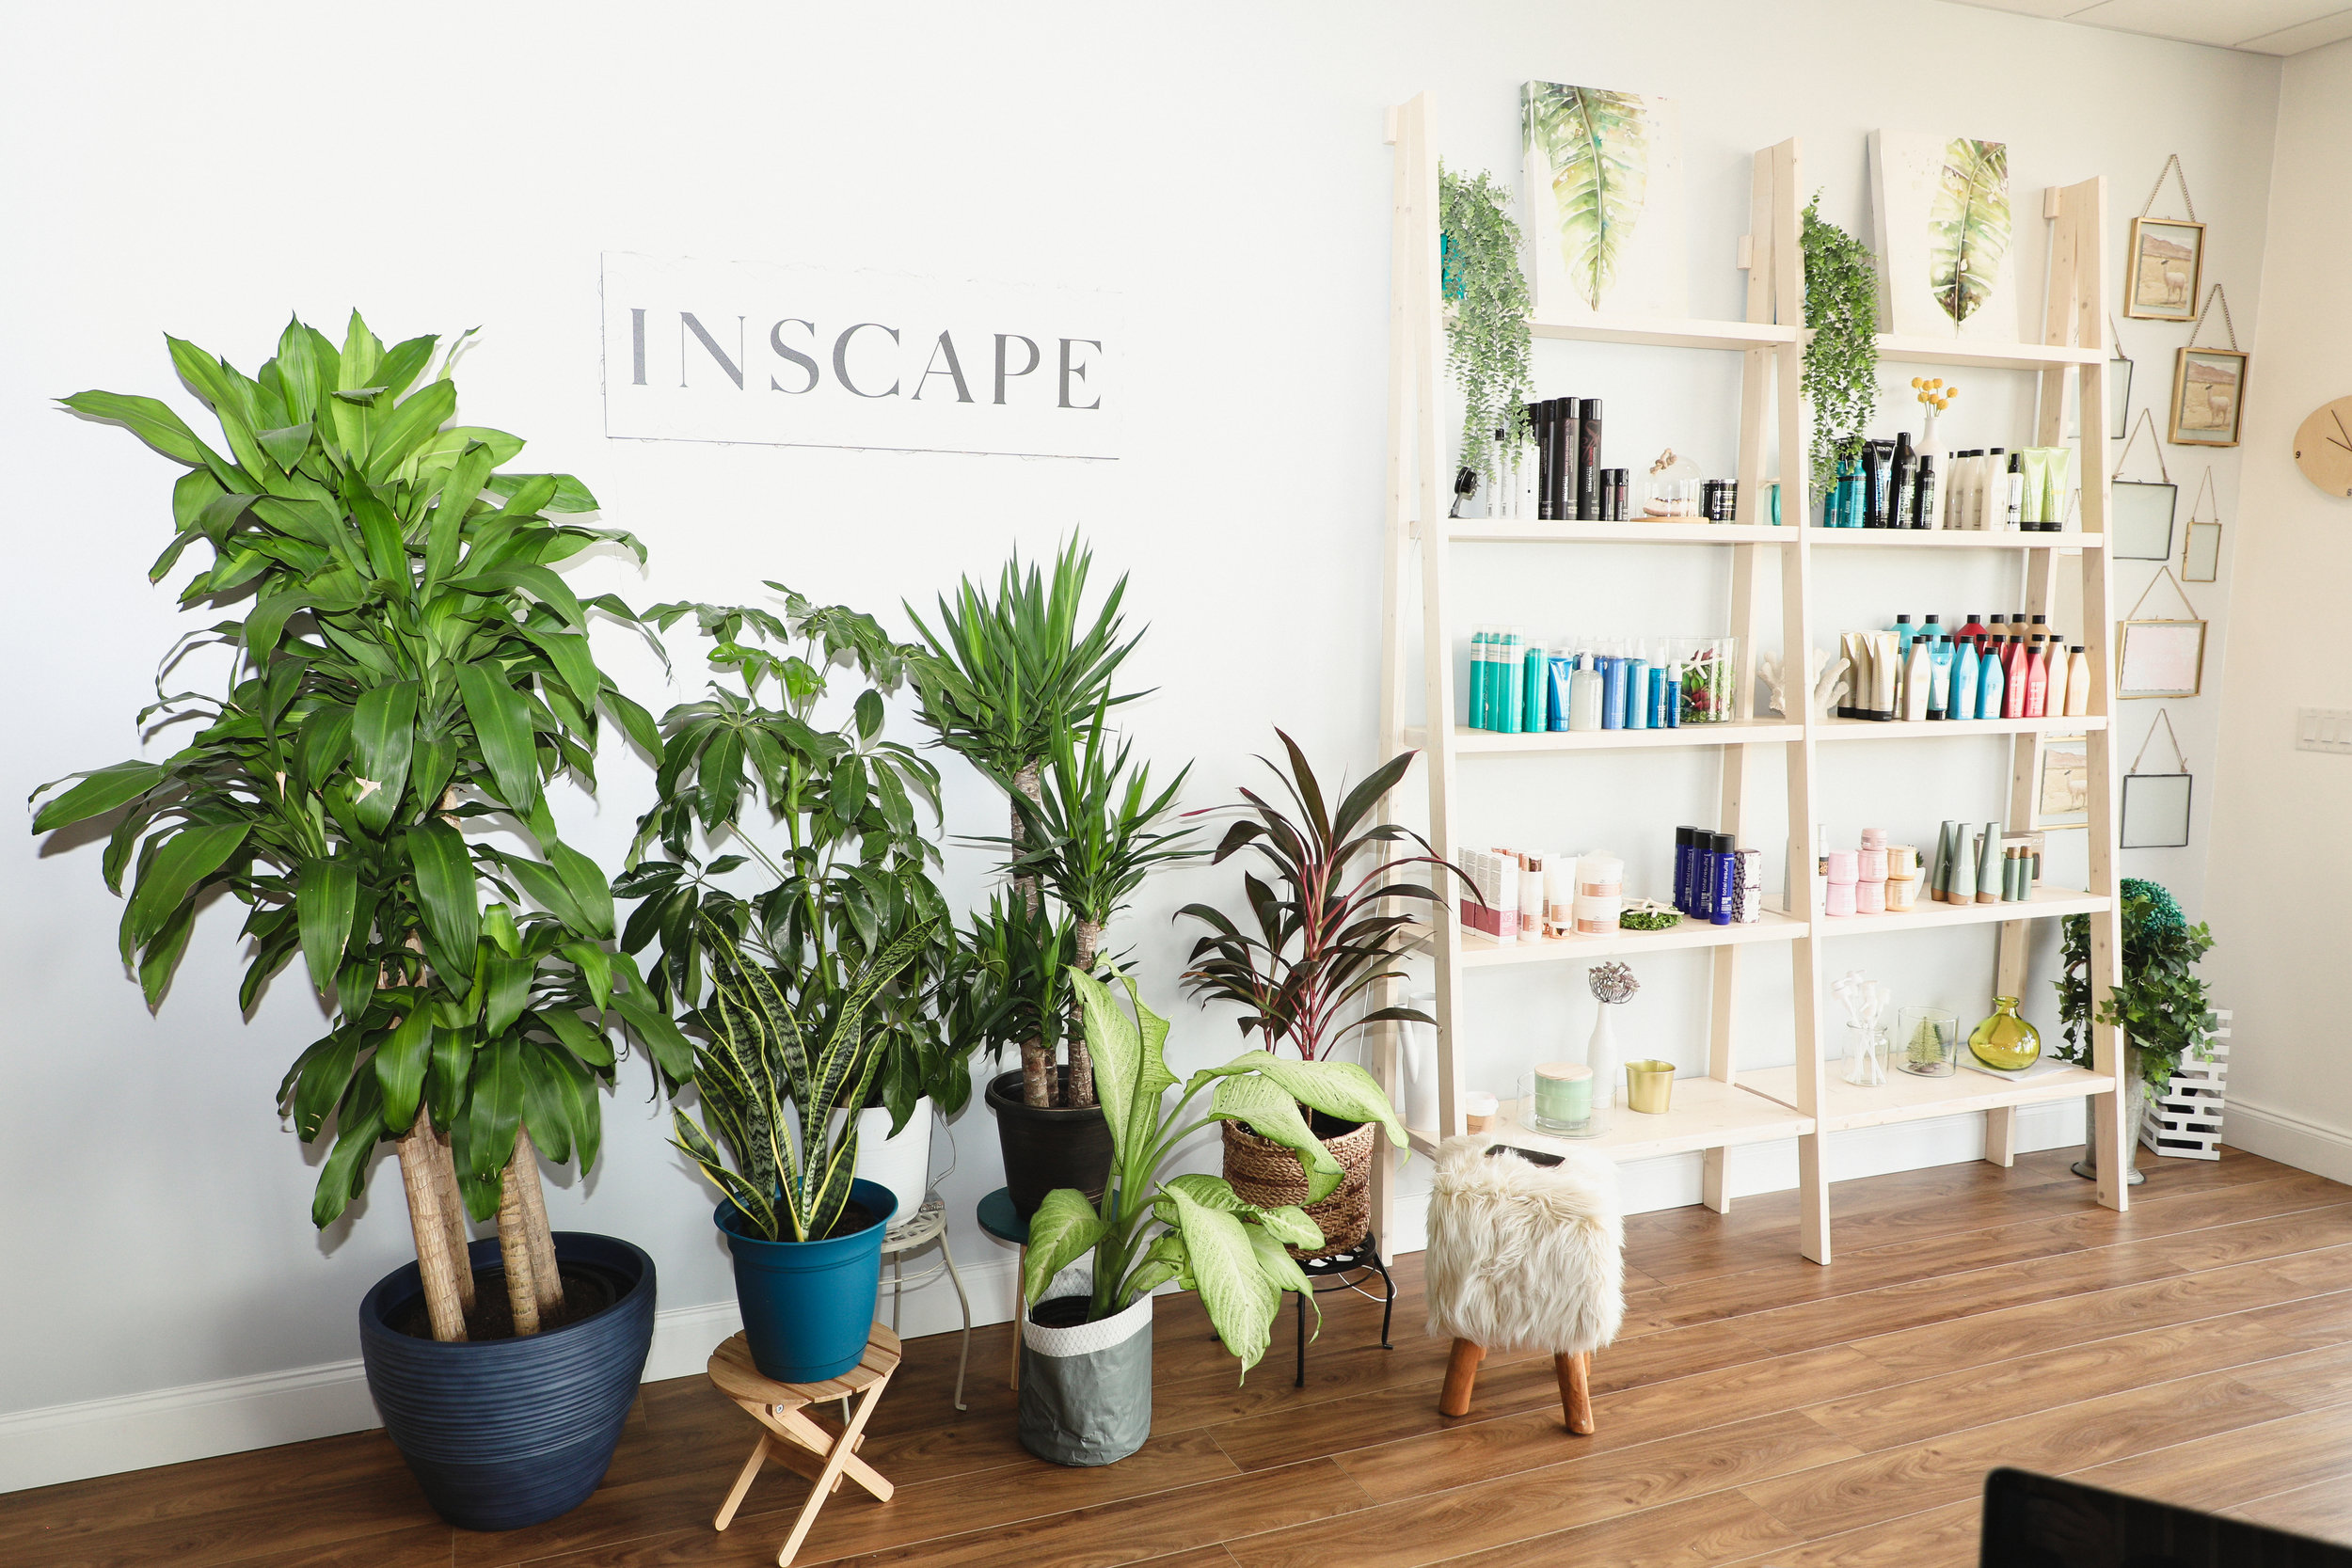 Inscape Beauty Salon - Plants & products display area.